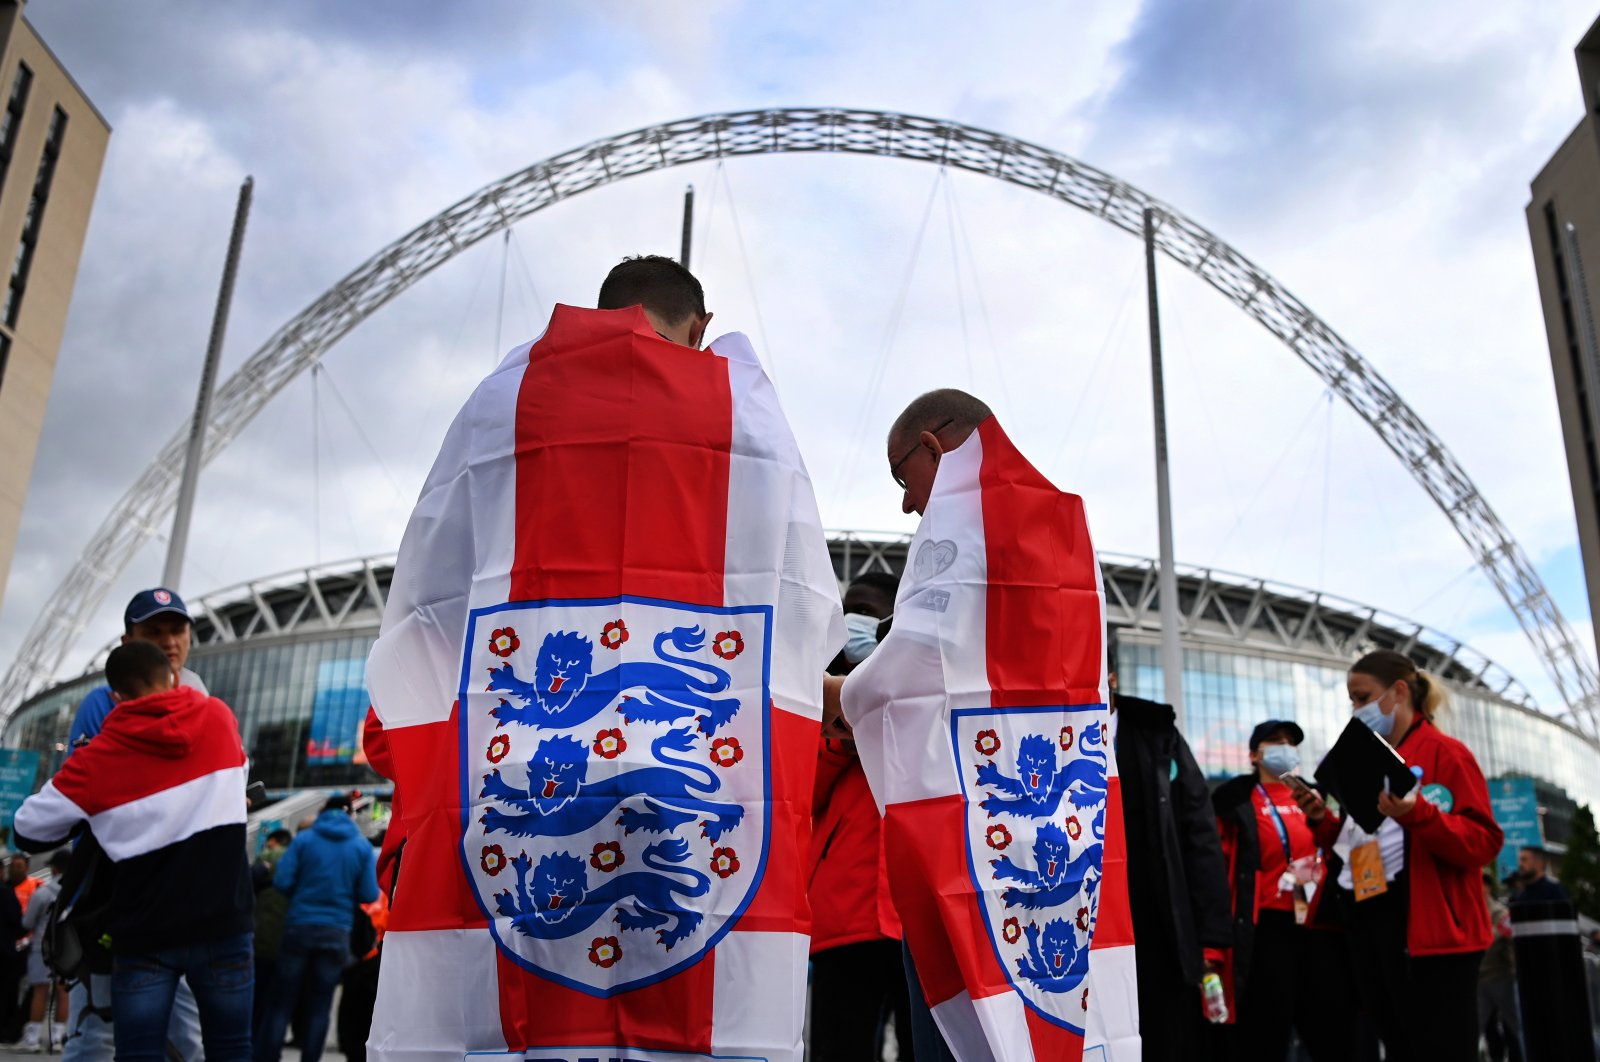 England fans arrive at Wembley Stadium ahead of the UEFA Euro 2020 Group D match between the Czech Republic and England in London, England, June 22, 2021. (EPA Photo)